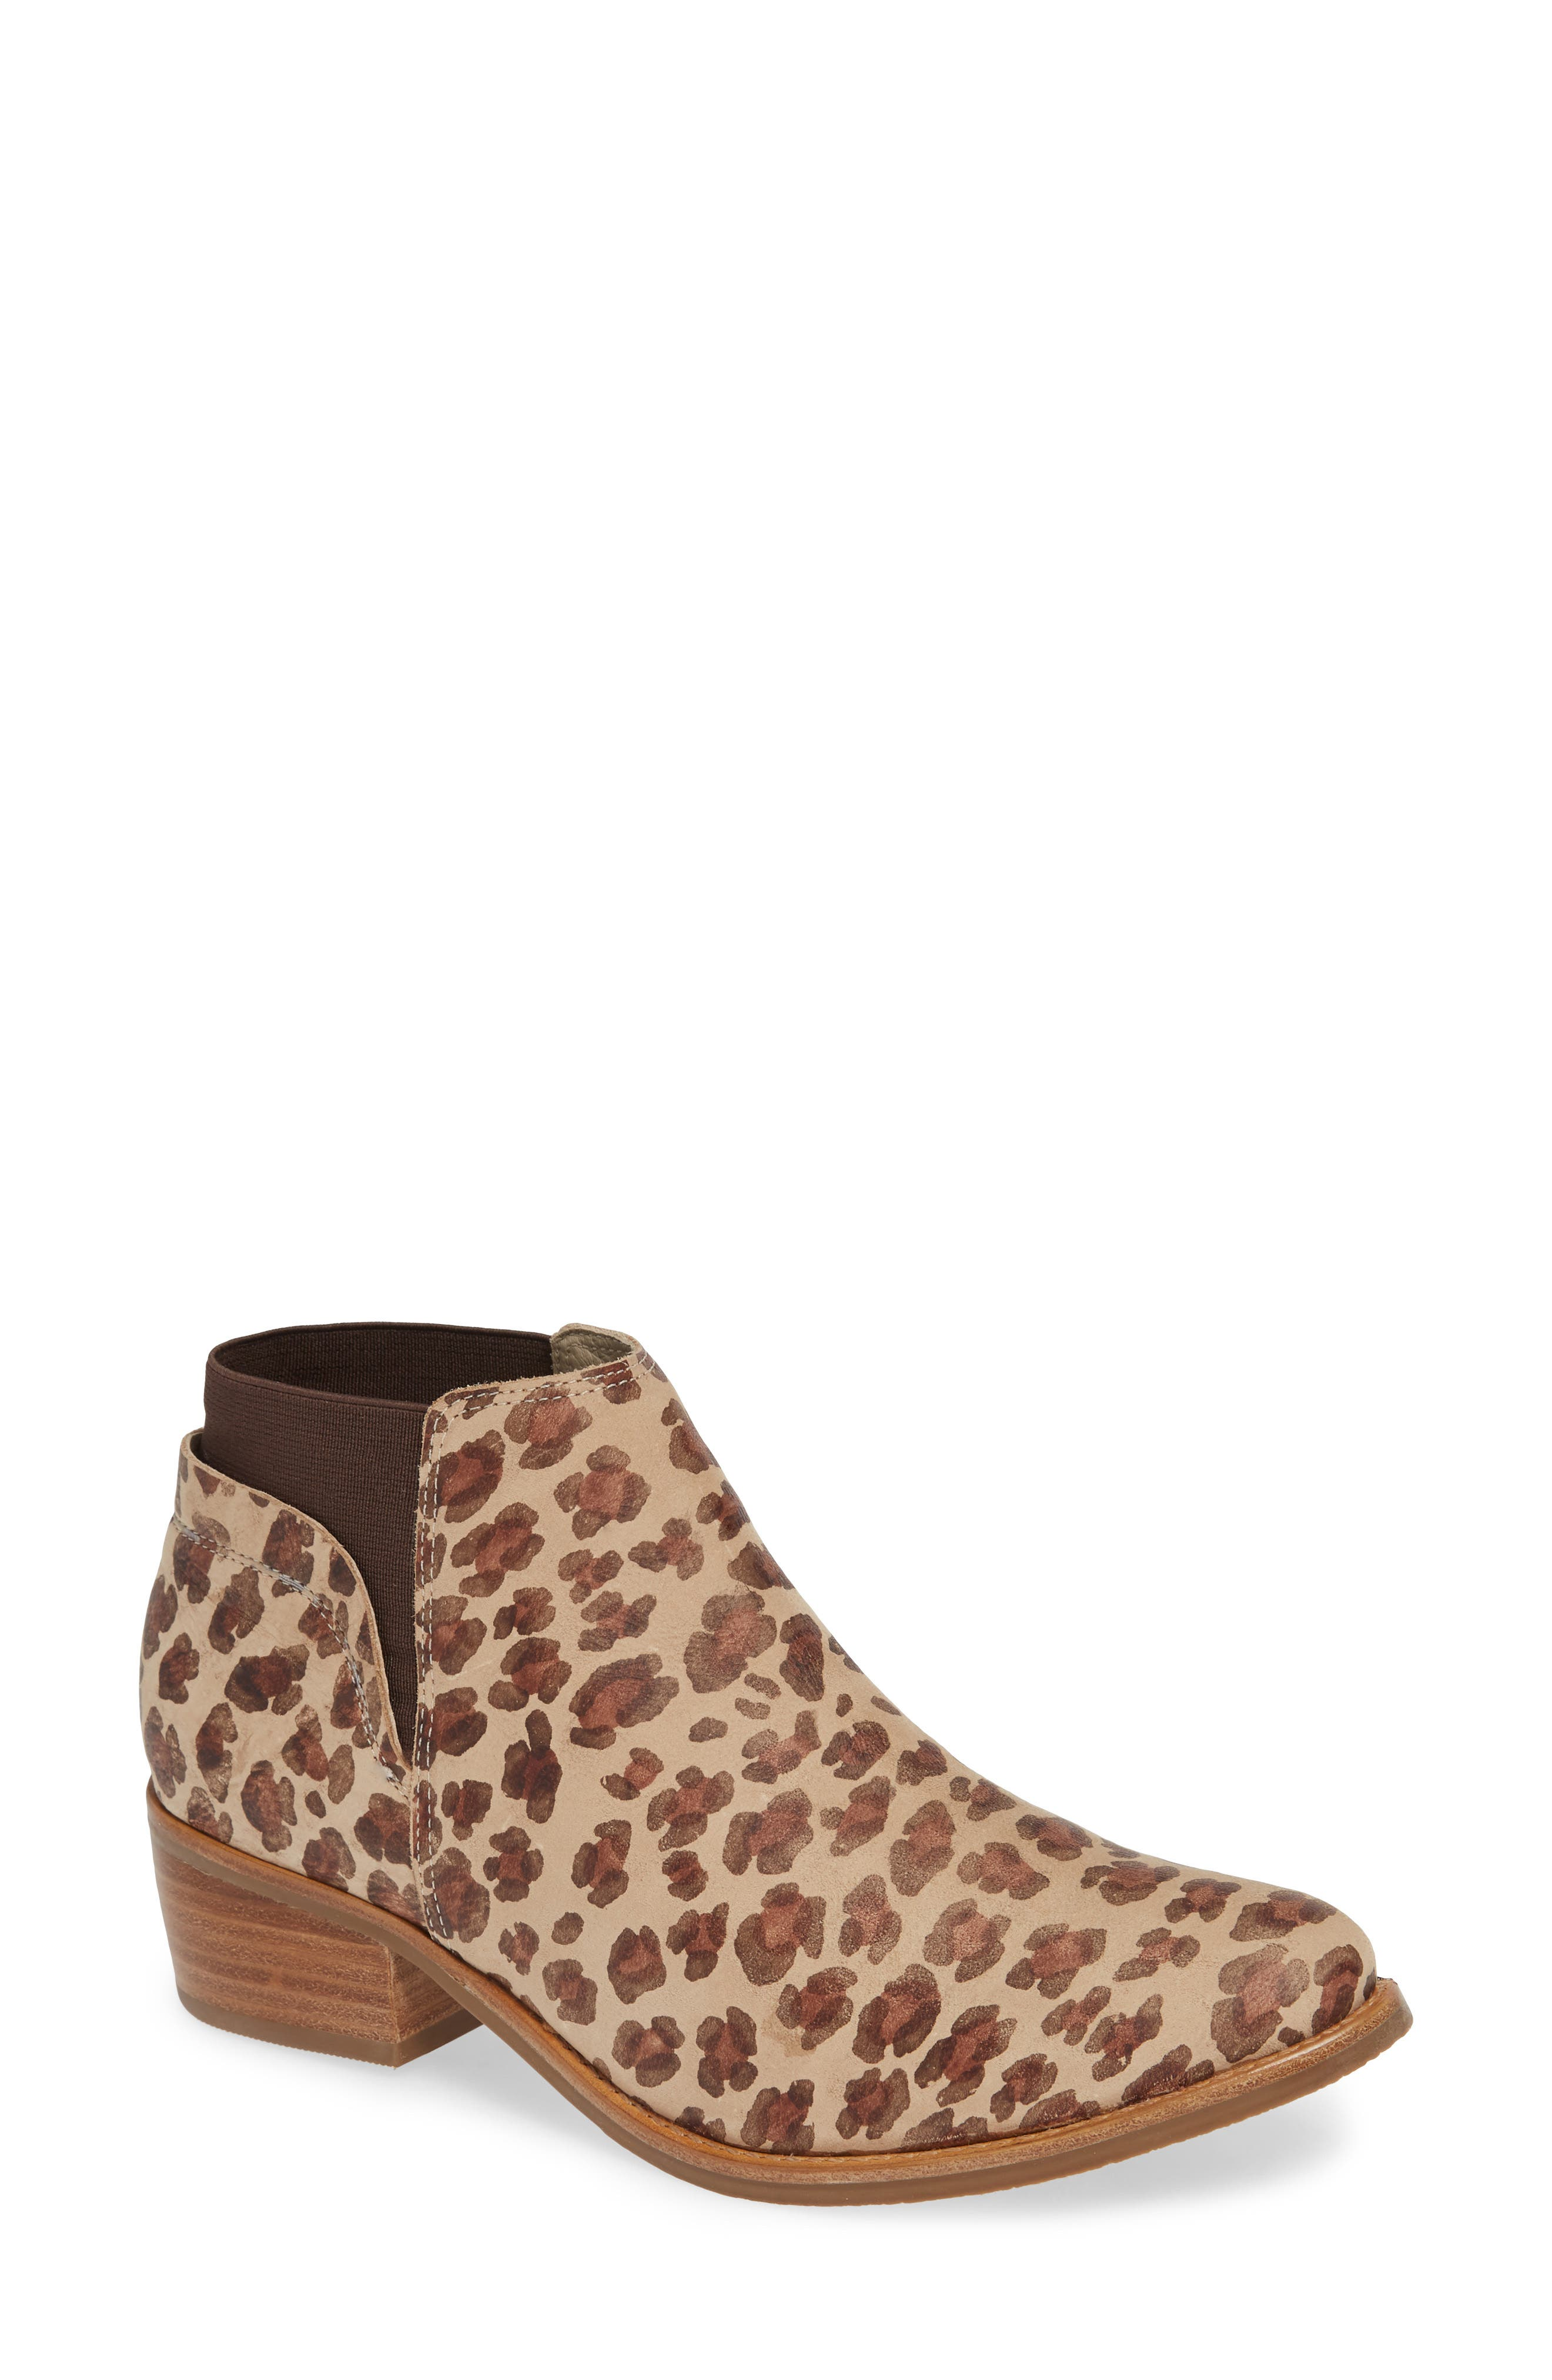 MATISSE Ready Or Not Bootie in Leopard Suede